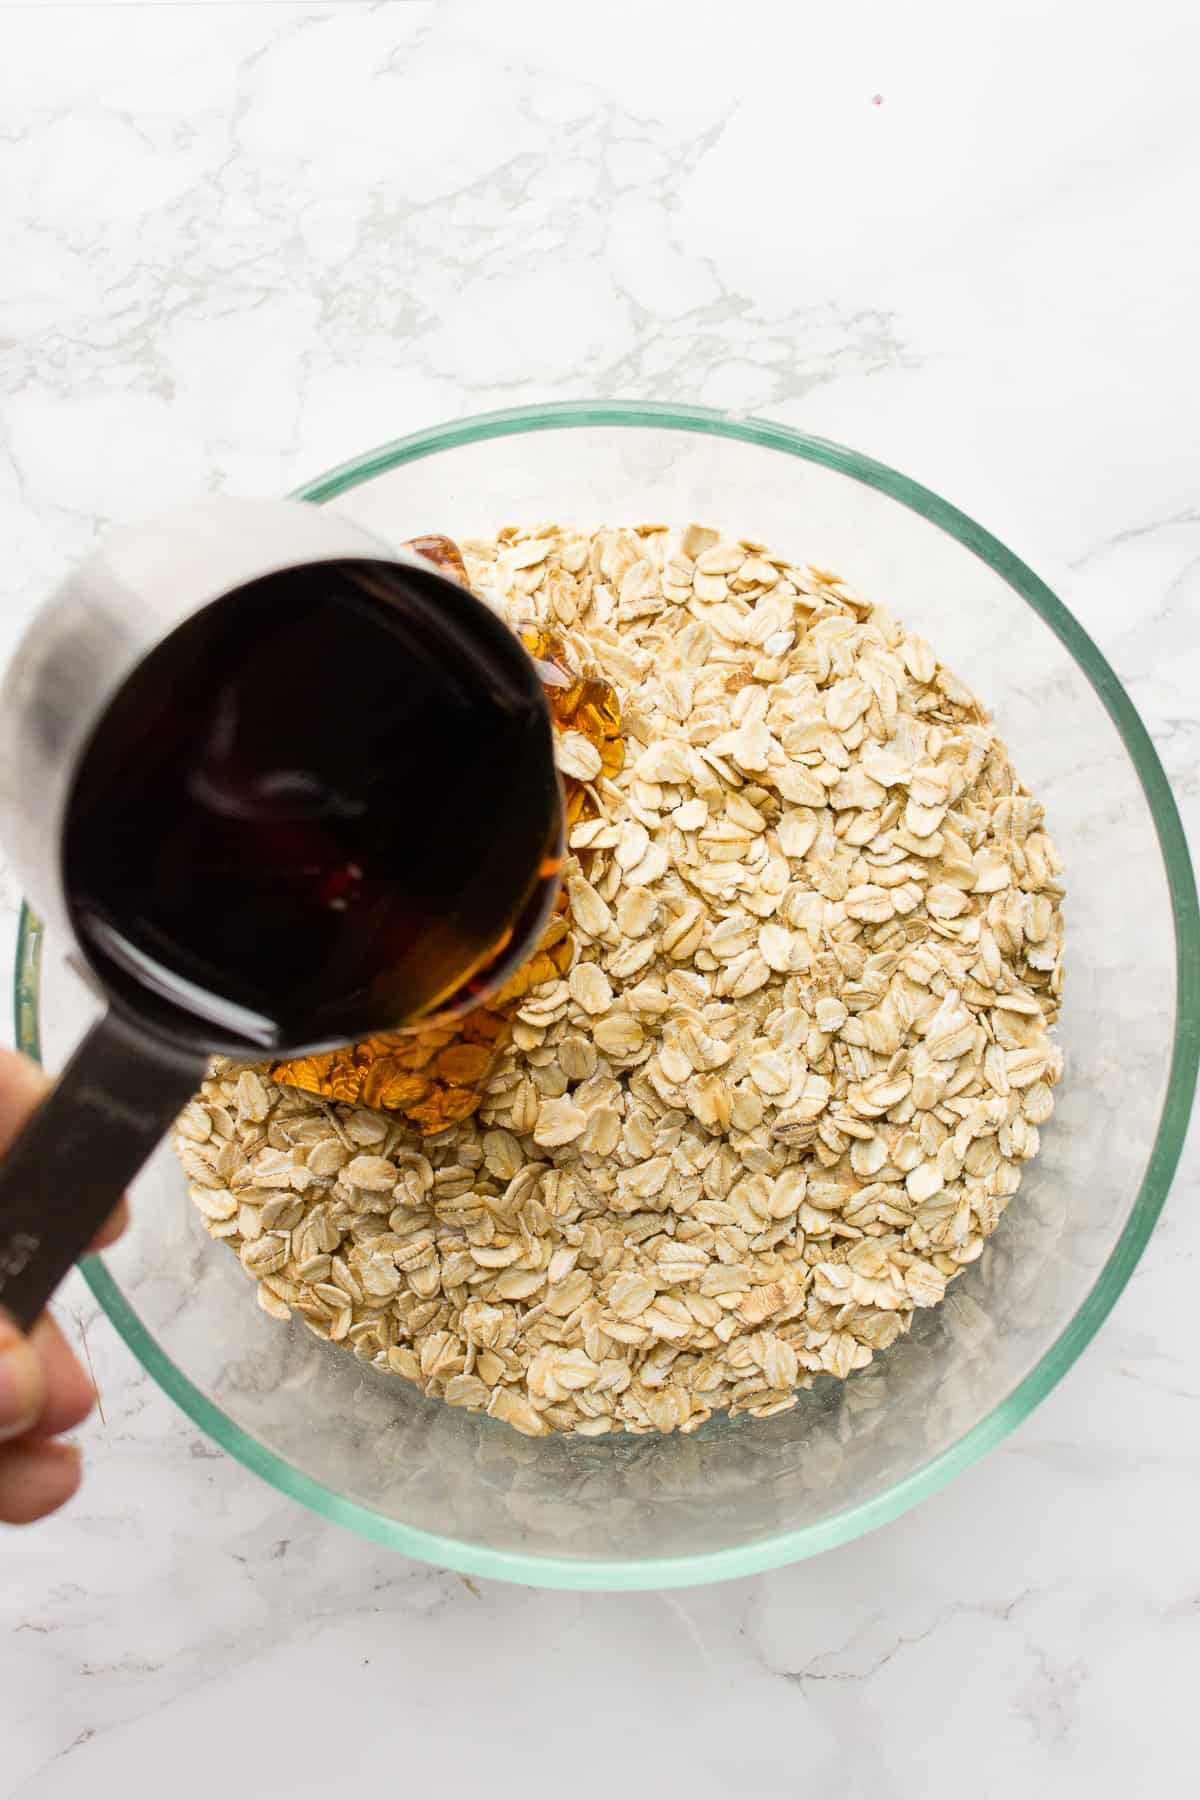 A large spoon pouring maple syrup into simple granola